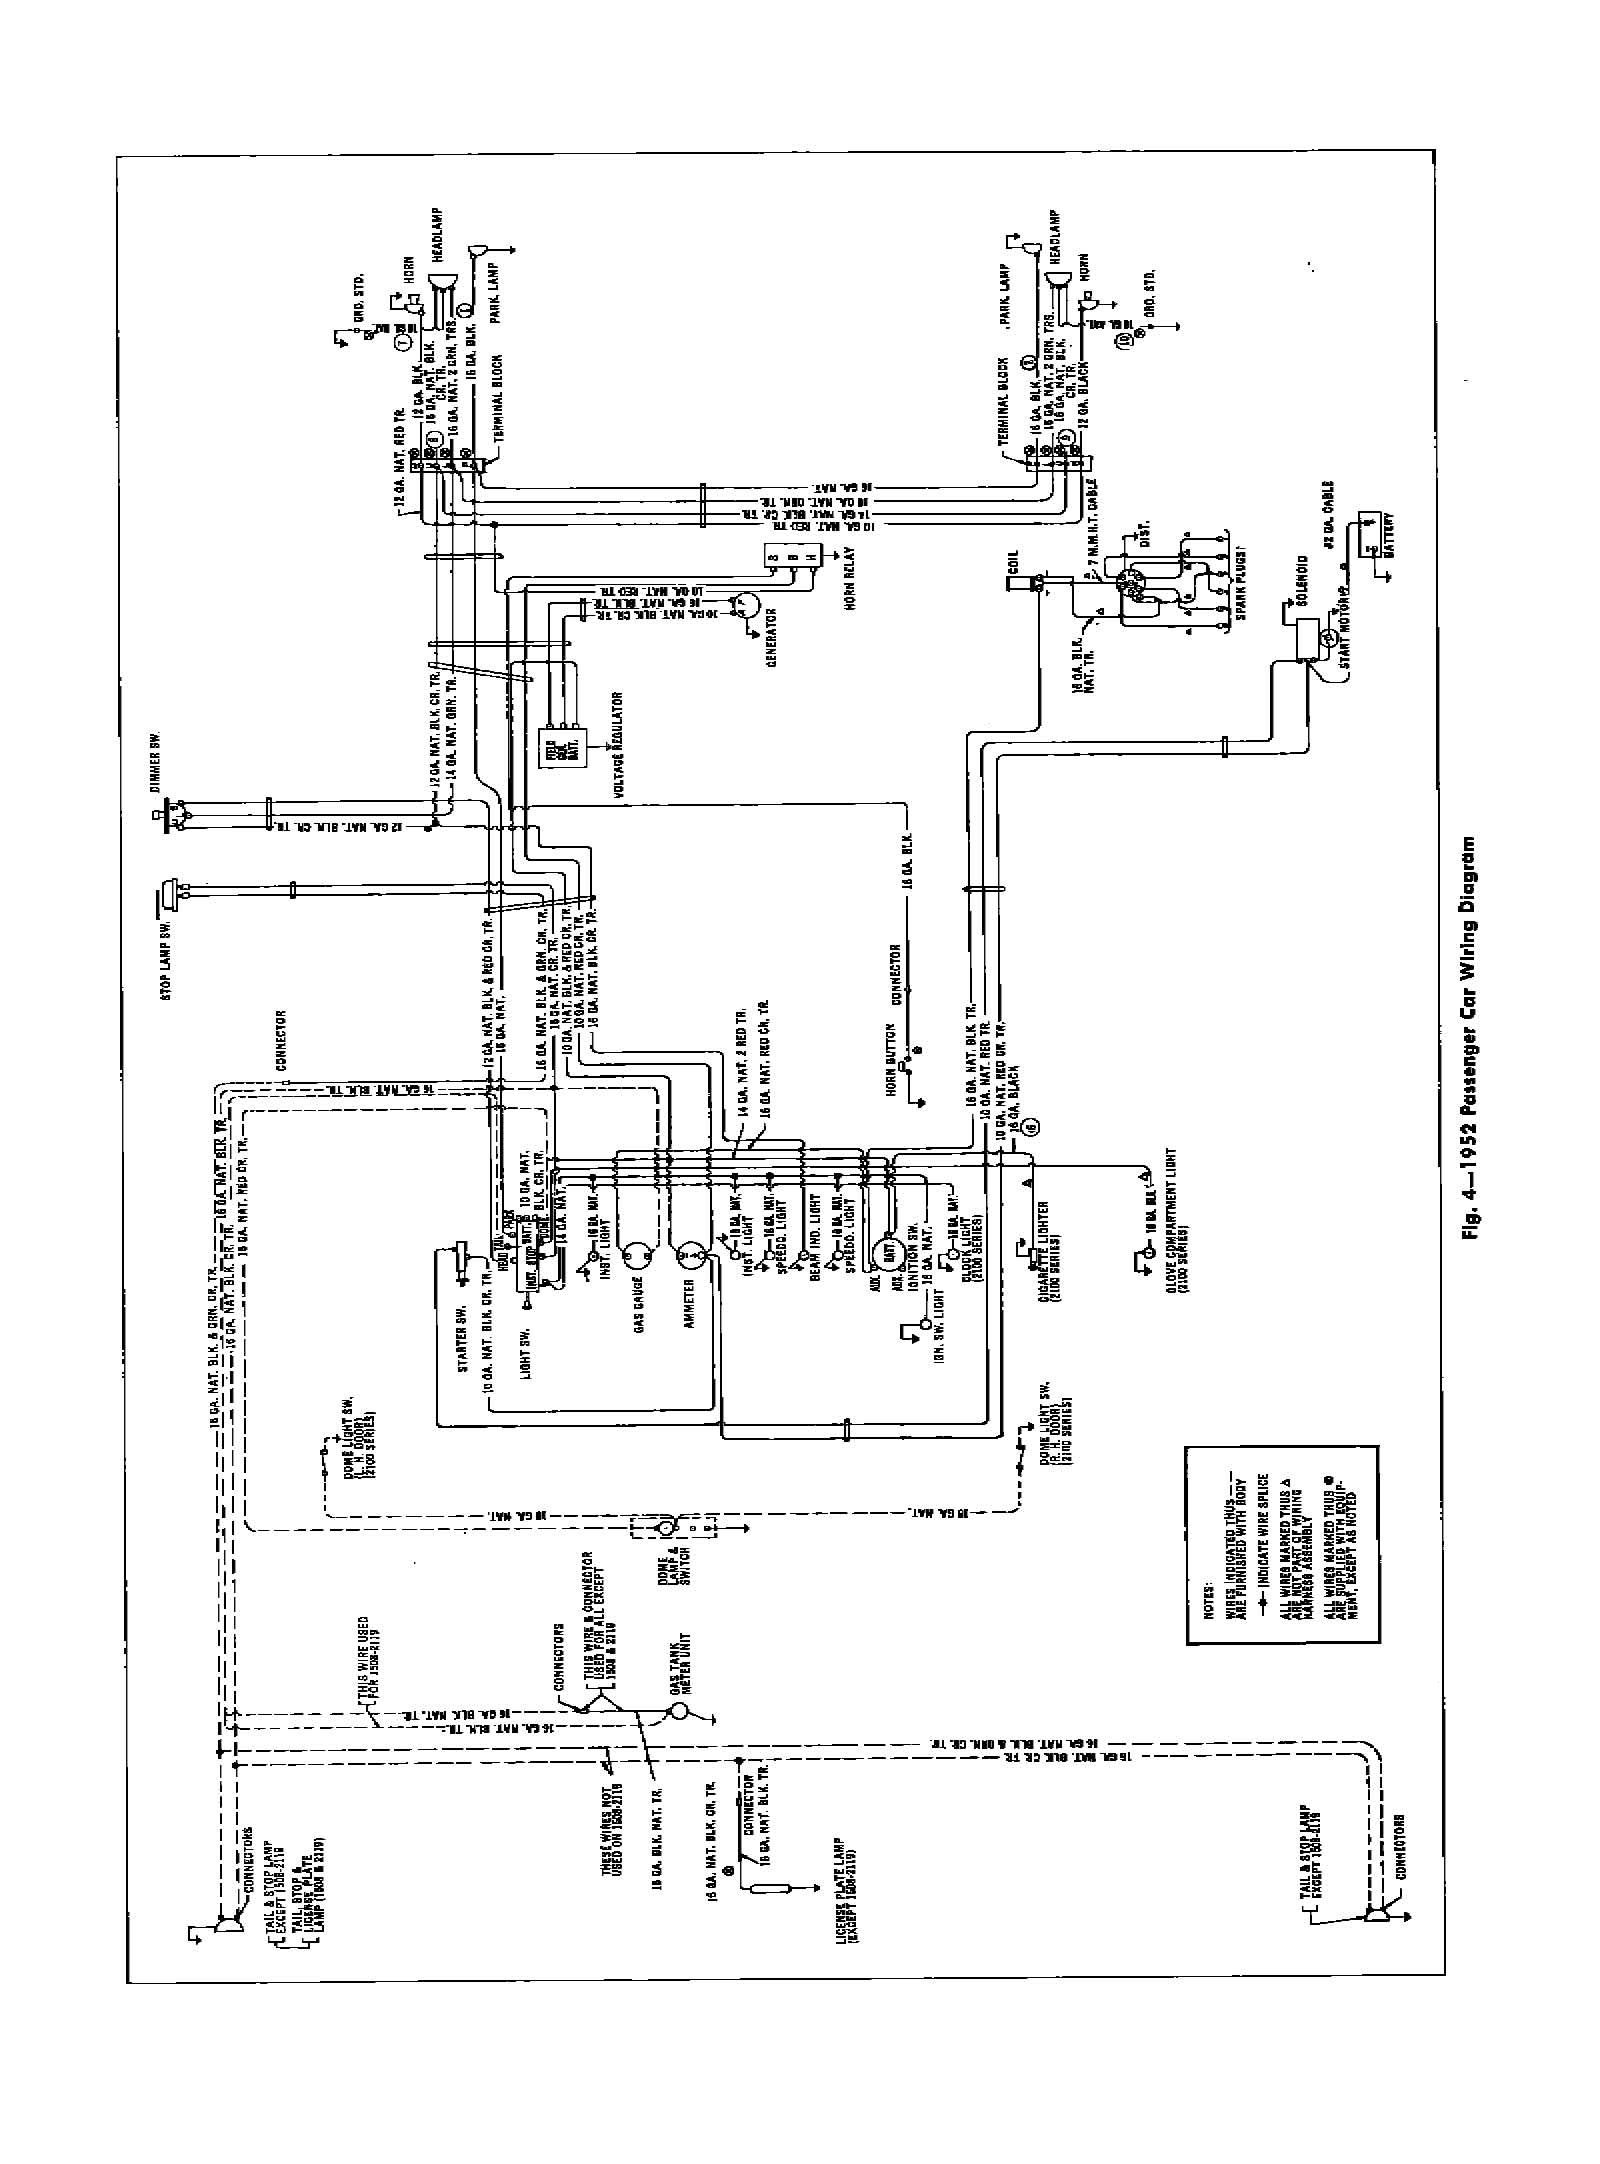 1952 Chevy Wiring Diagram